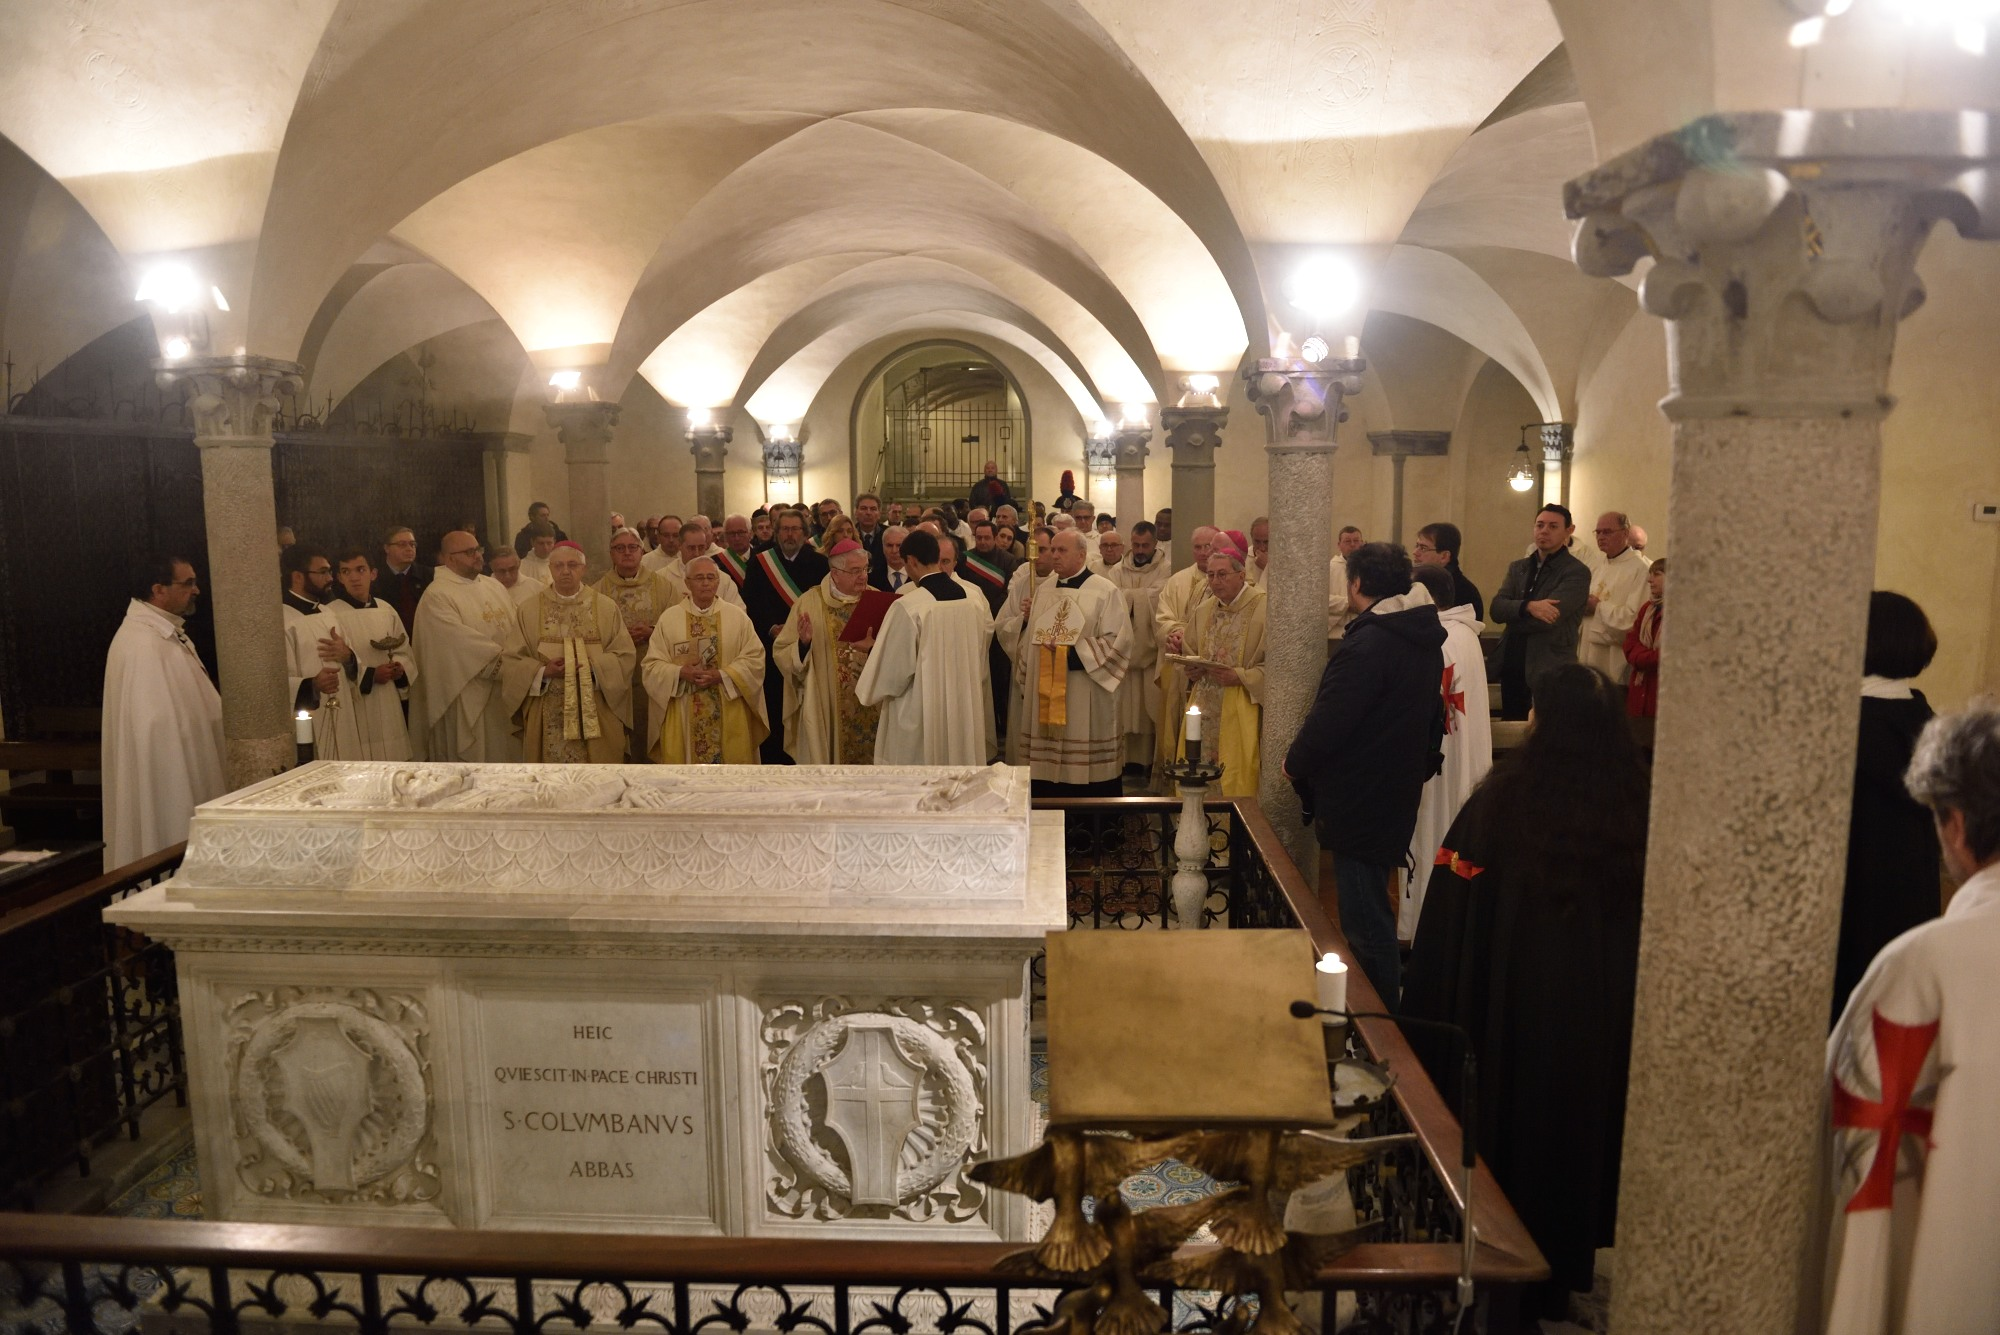 Celebration of S. Colombano 2019 Bobbio (PC) in the Abbey dedicated to him with the Bishops of Piacenza, Lodi, Fidenza, Derry, and the presence of the Mayors of Val Trebbia